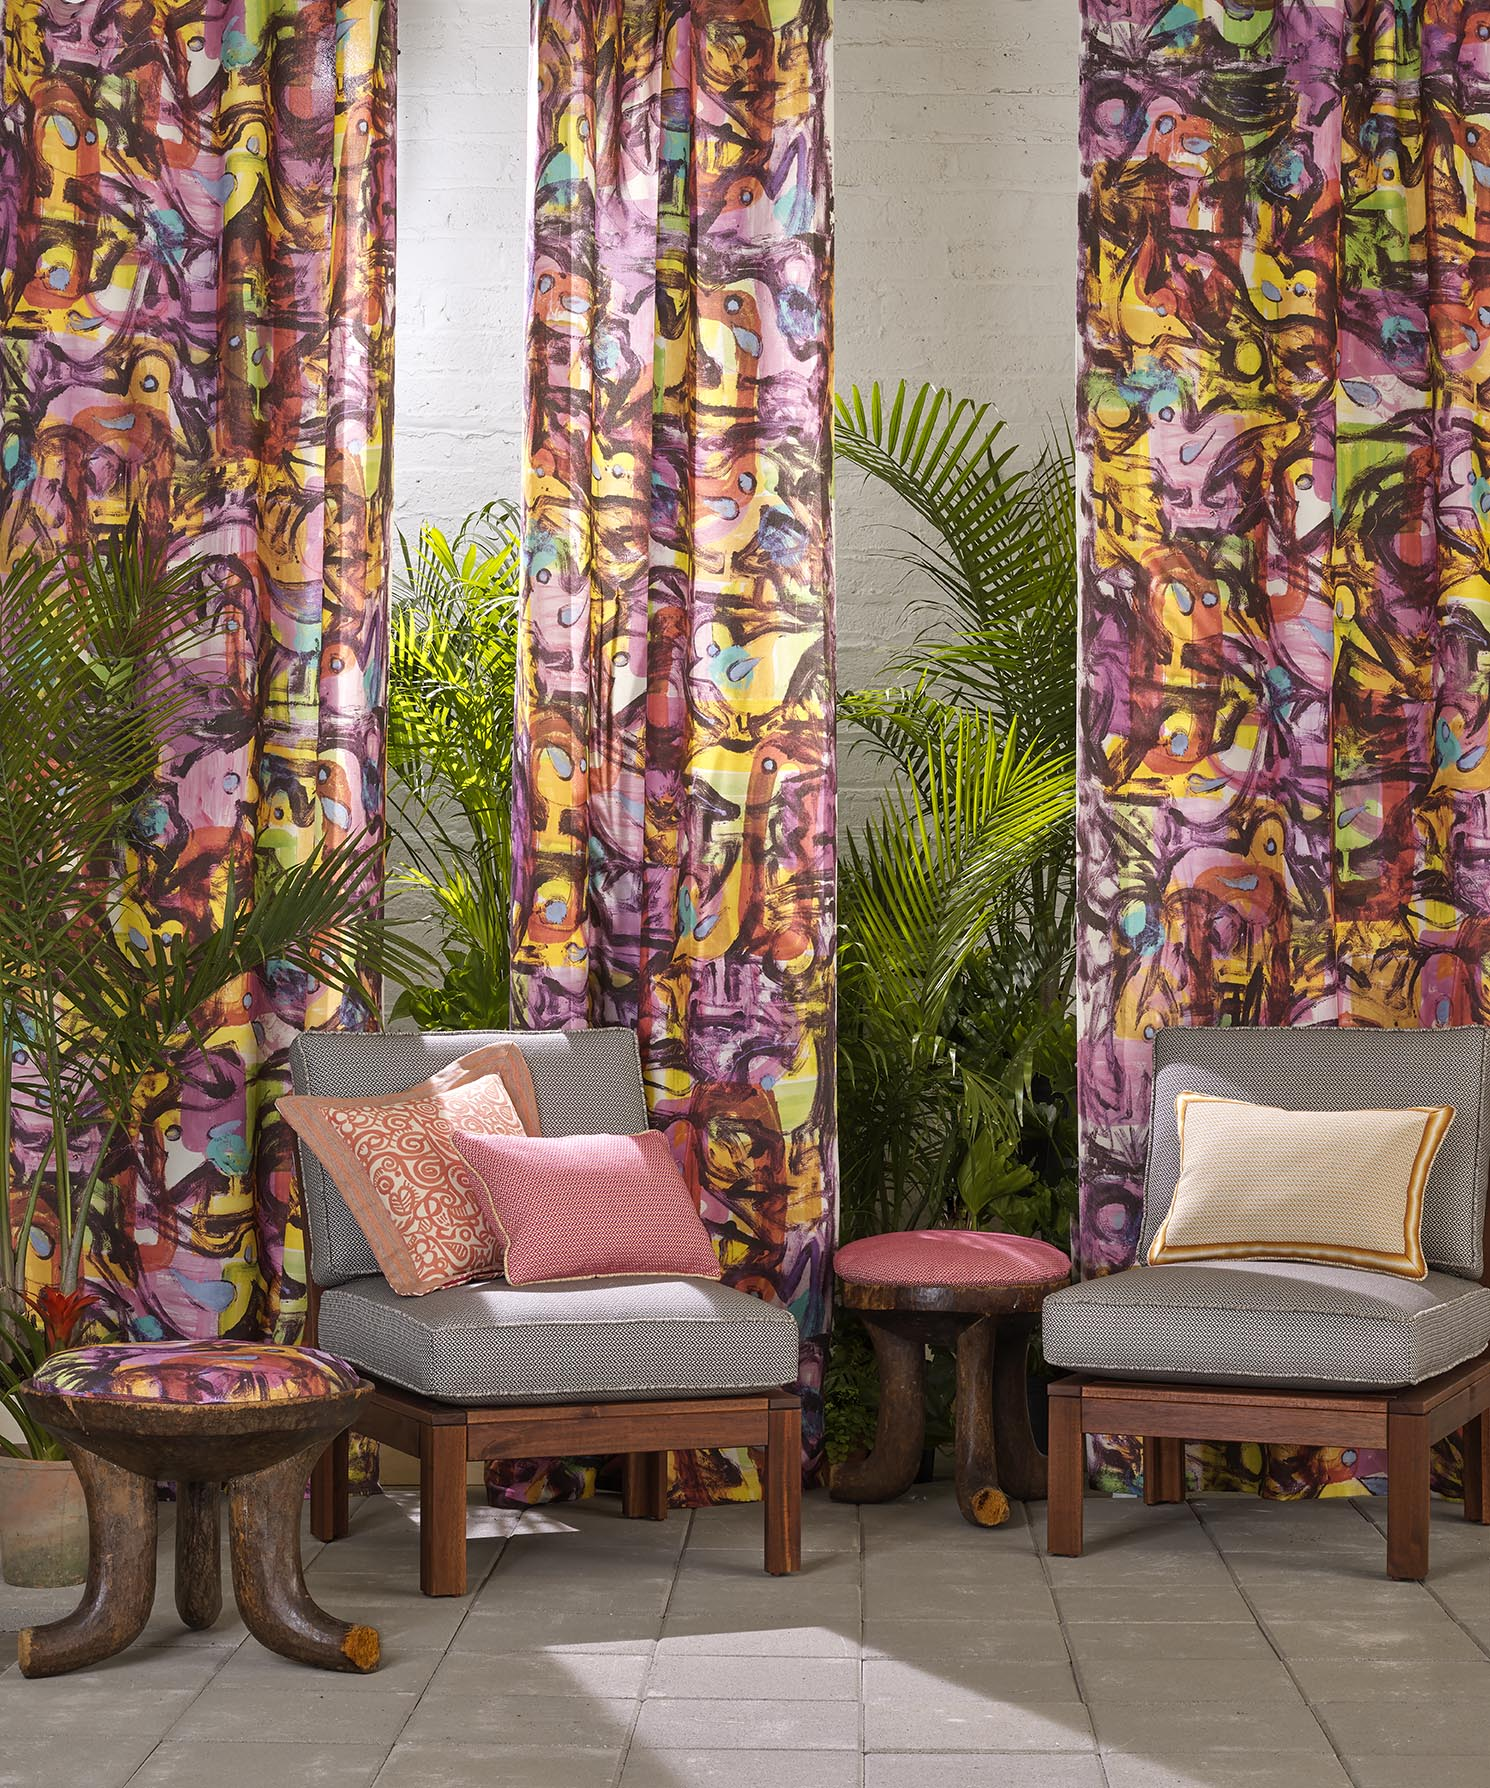 Aviary is a digitally printed indoor / outdoor fabric